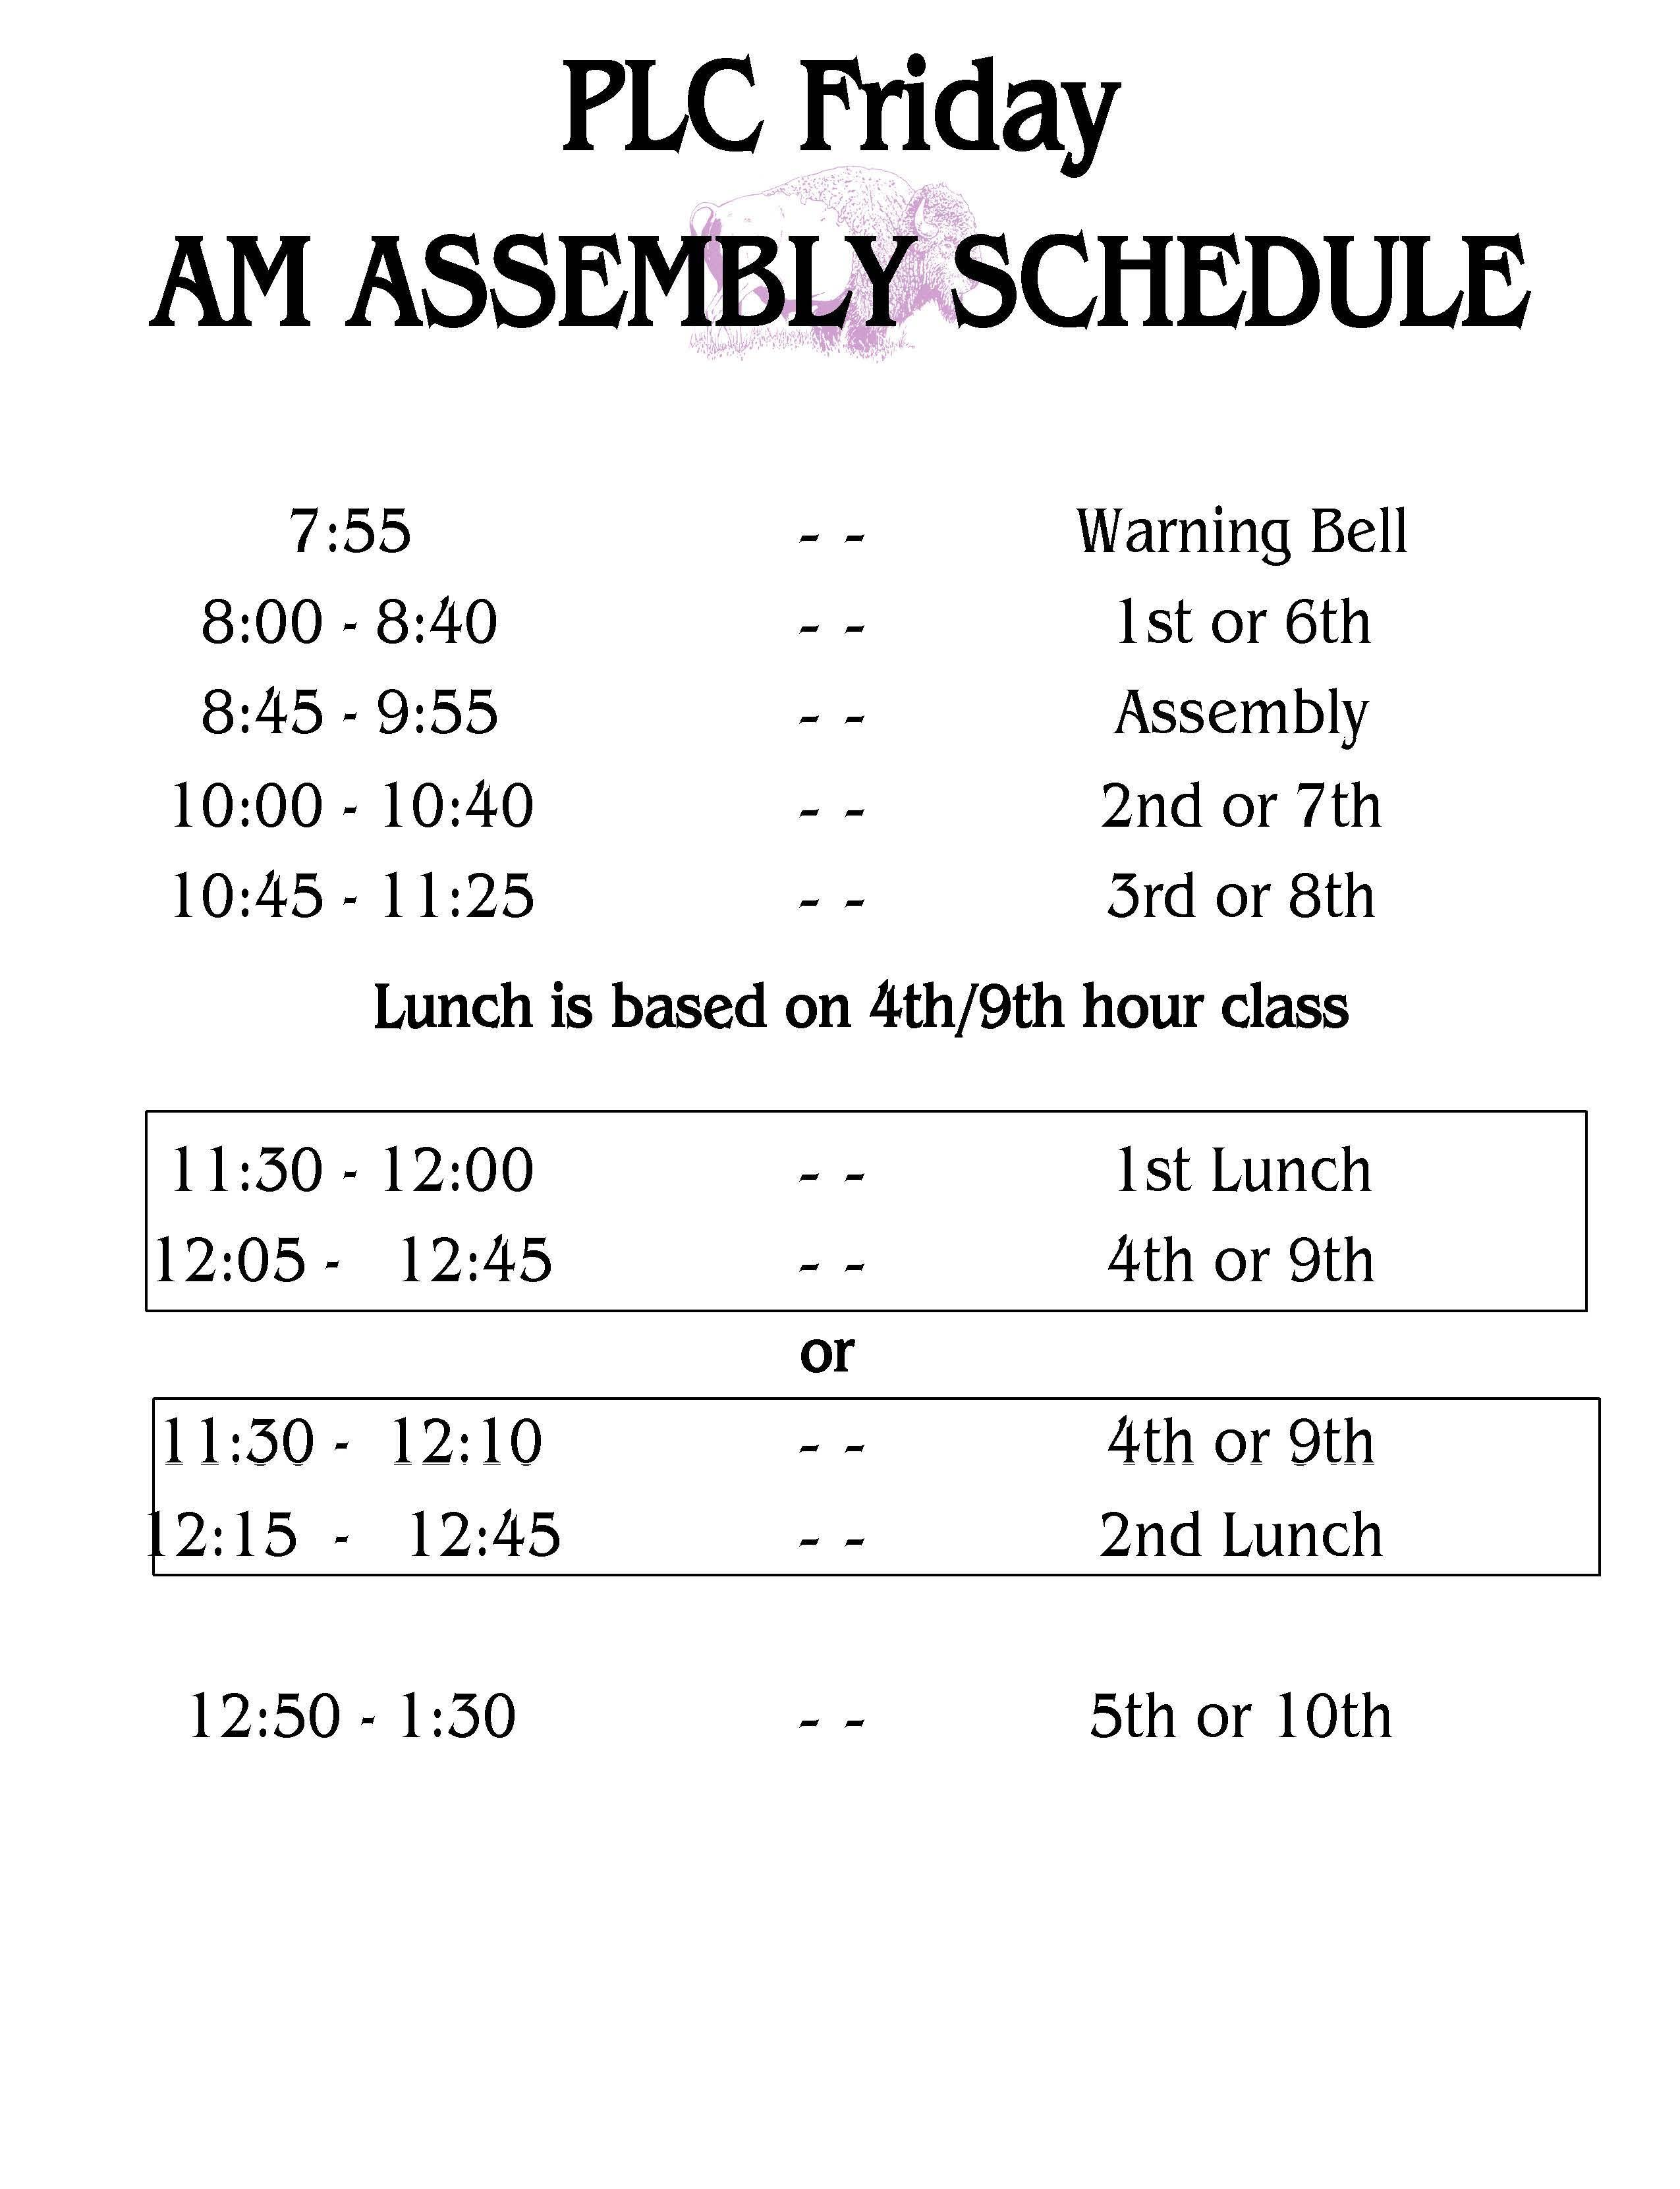 Friday AM assembly schedule